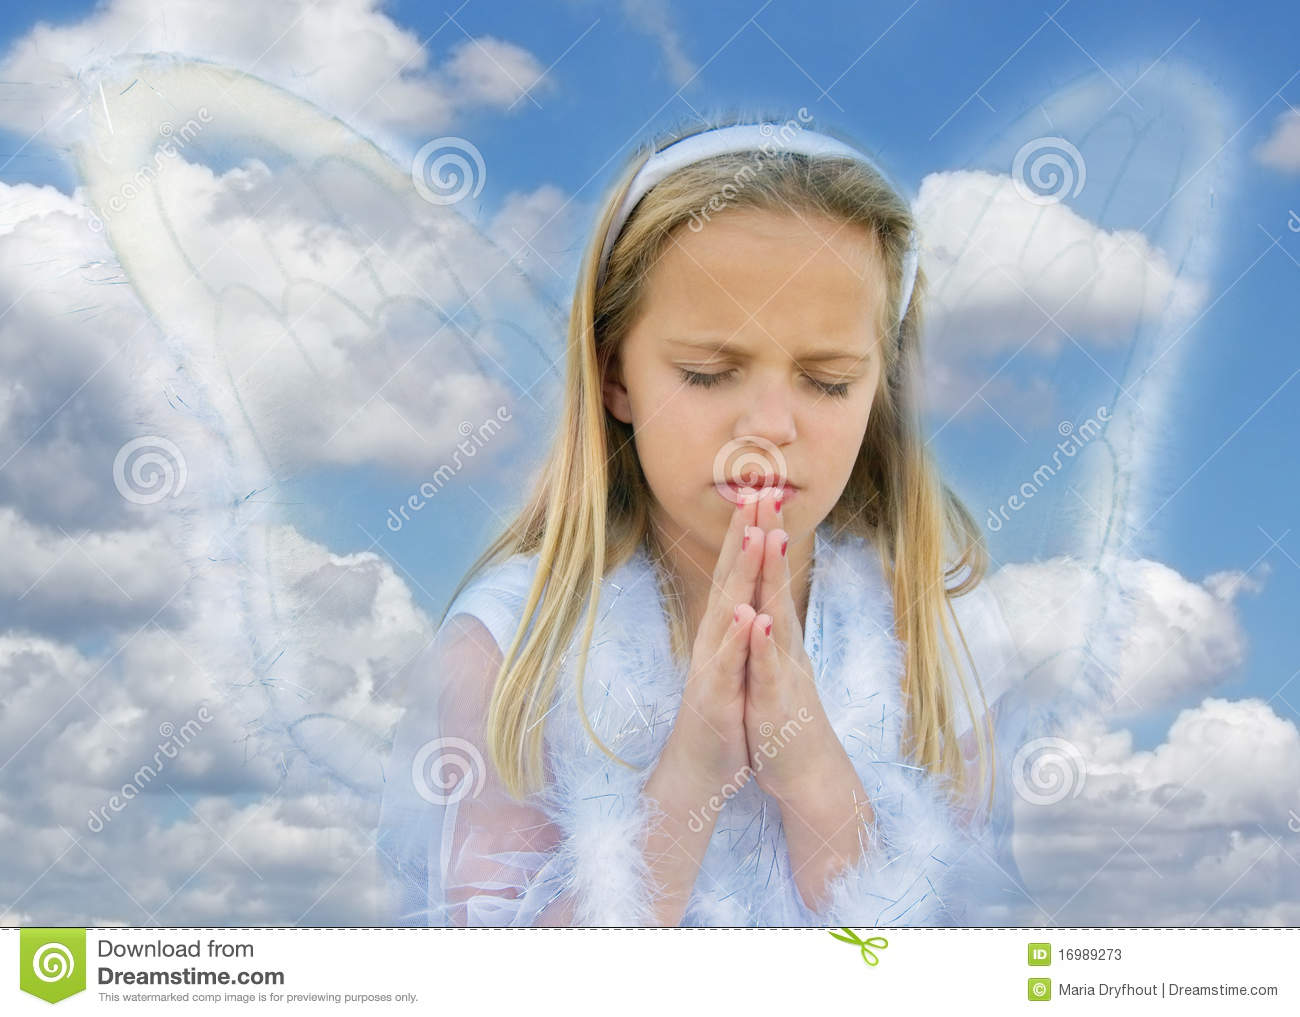 Young girl in praying pose with angel wings.